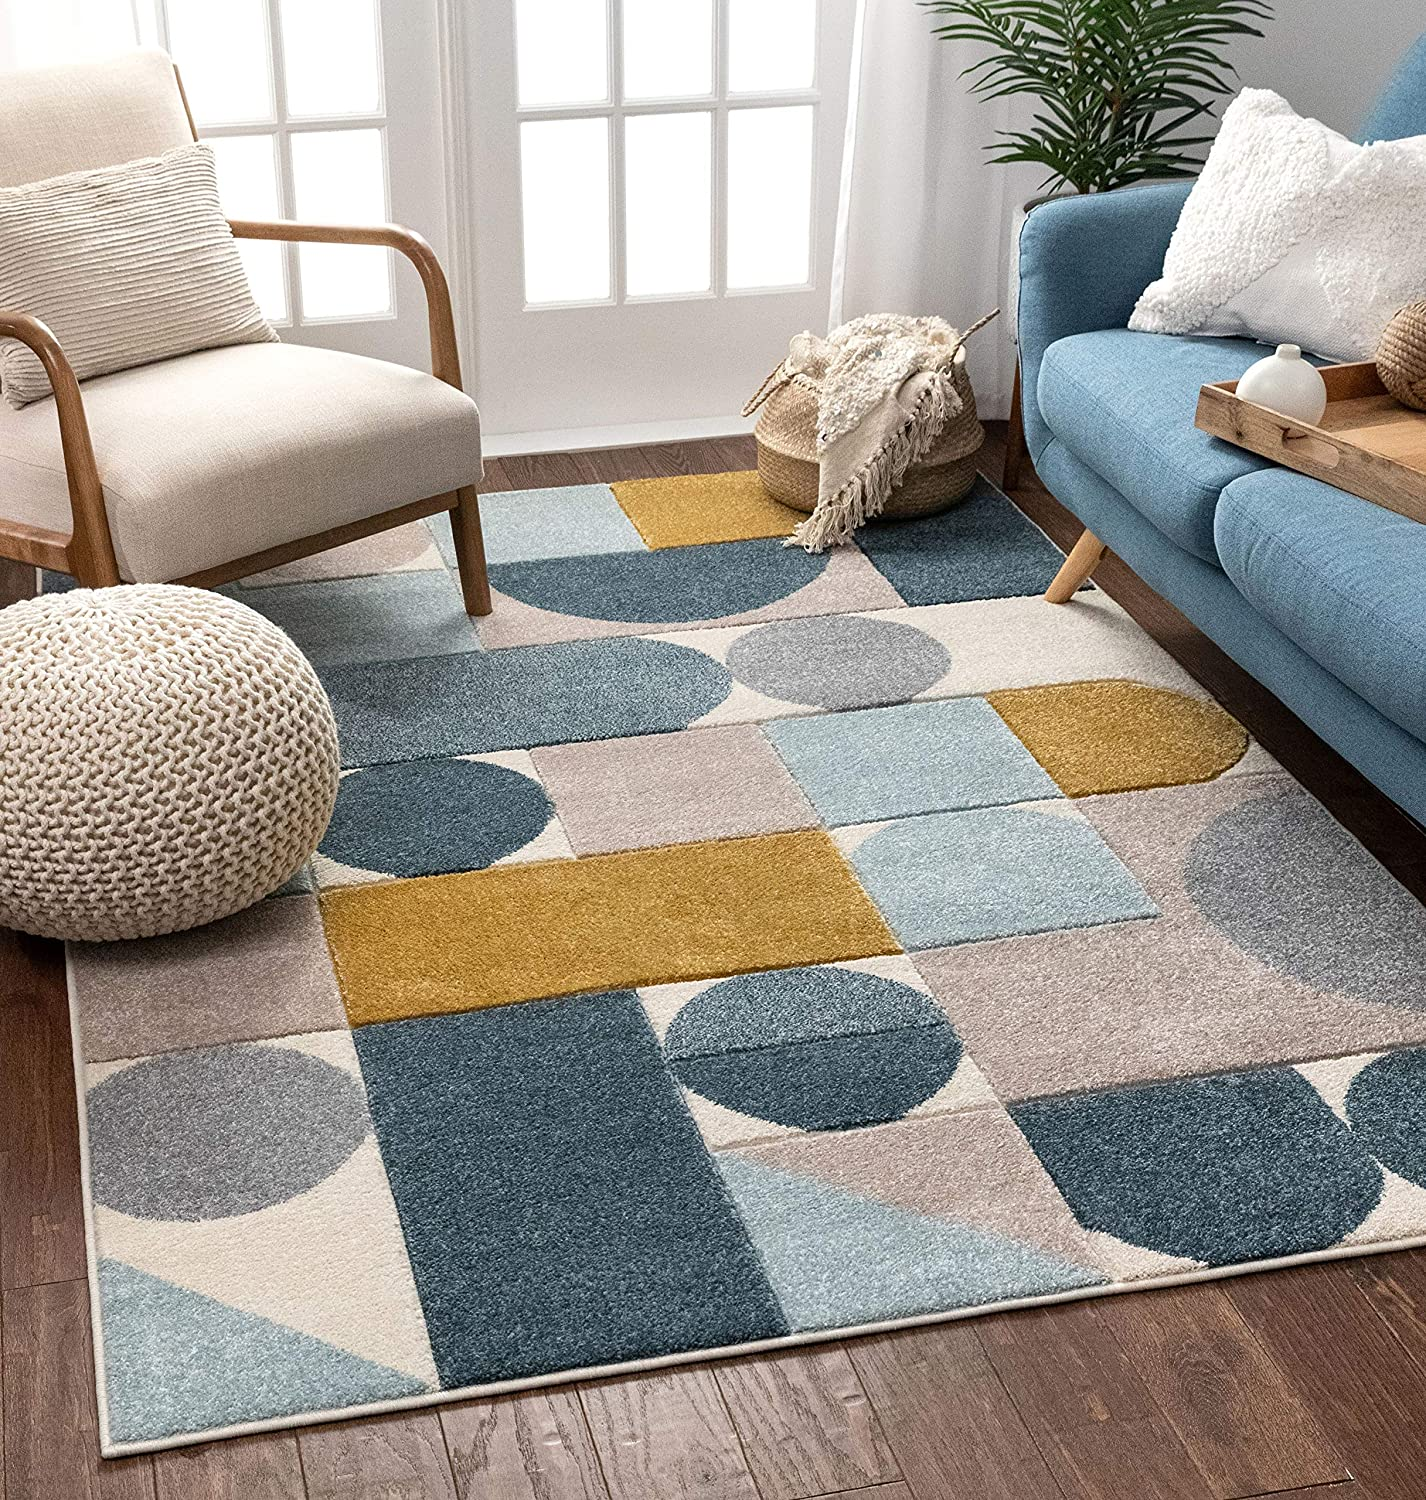 Amazon Com Well Woven Ruby Dede Blue Mid Century Modern Geometric 3 11 X 5 3 Area Rug Cream Furniture Decor